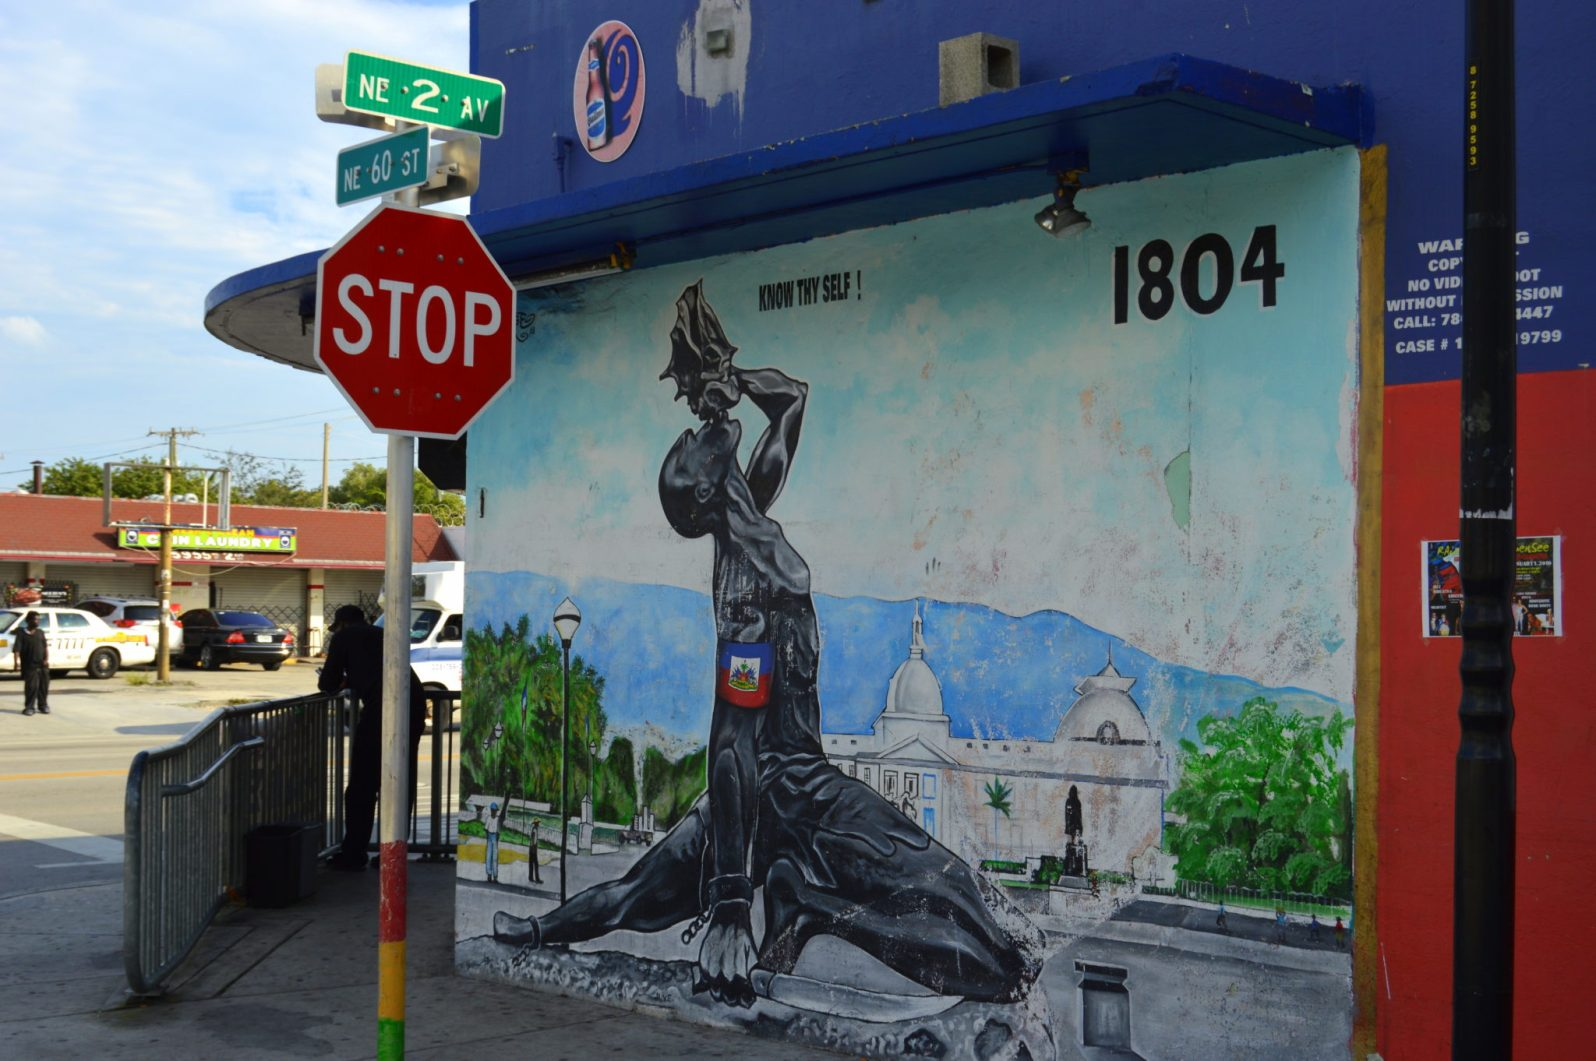 This mural by Toussaint depicts a statue in Haiti of a slave sounding the beginning of the revolution by blowing a conch shell and breaking the chains of oppression.